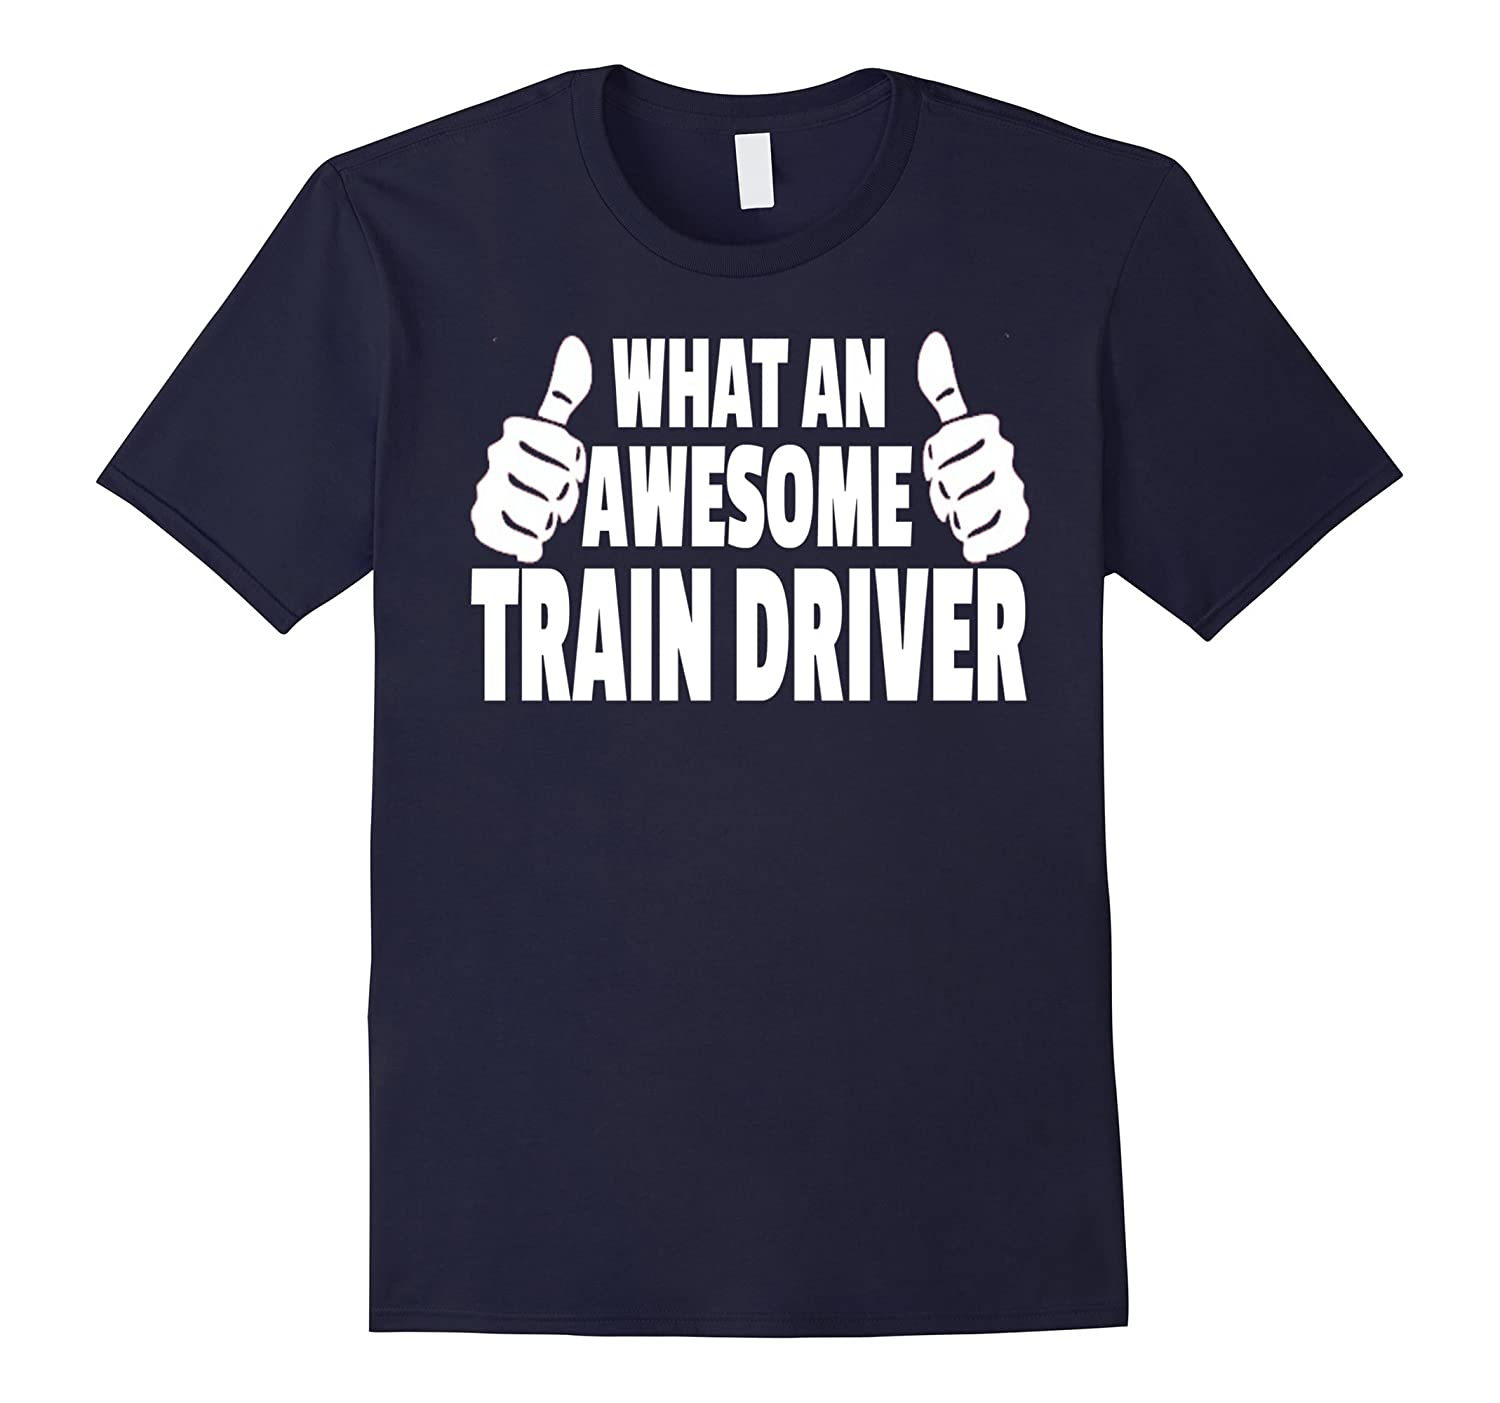 TRAIN DRIVER T-SHIRT WHAT AN AWESOME TRAIN DRIVER SHIRT-PL